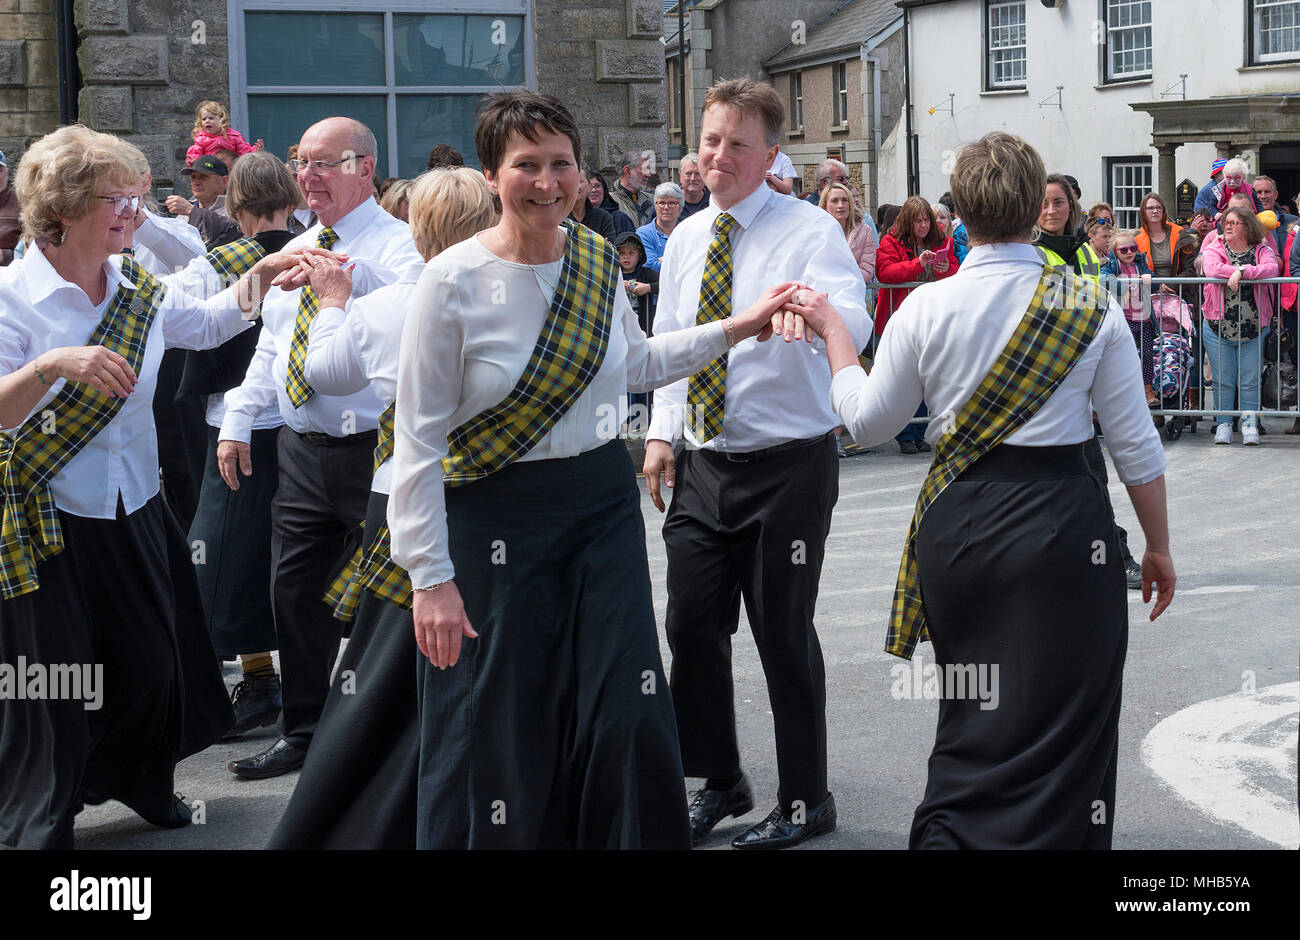 traditional cornish dancing in the streets during the annual trevithick day celebrations in camborne, cornwall, england, britain, uk, - Stock Image